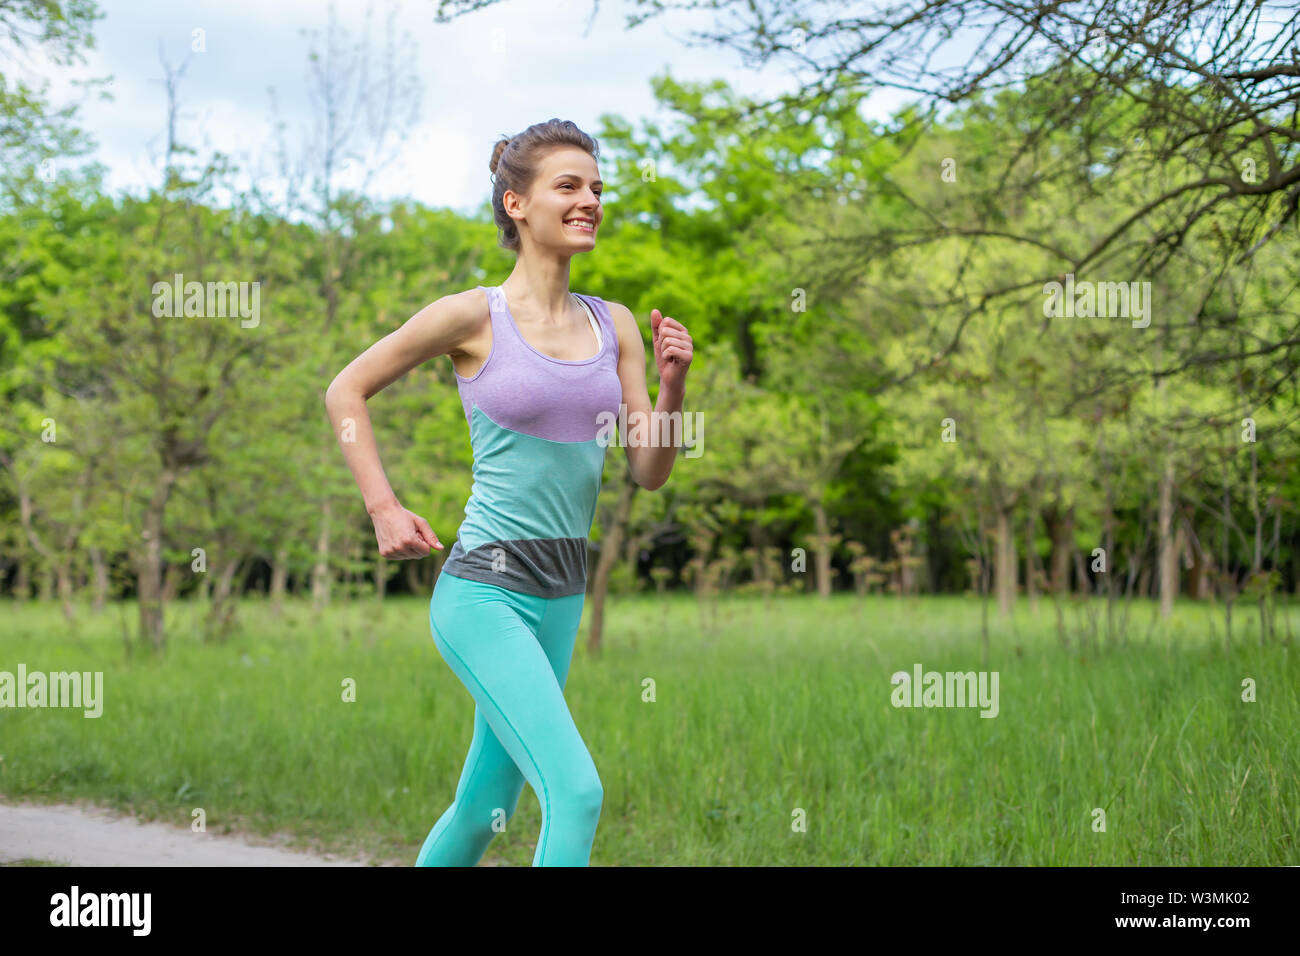 Sports brunette girl jogging in the park. Green forest on the background. - Stock Image